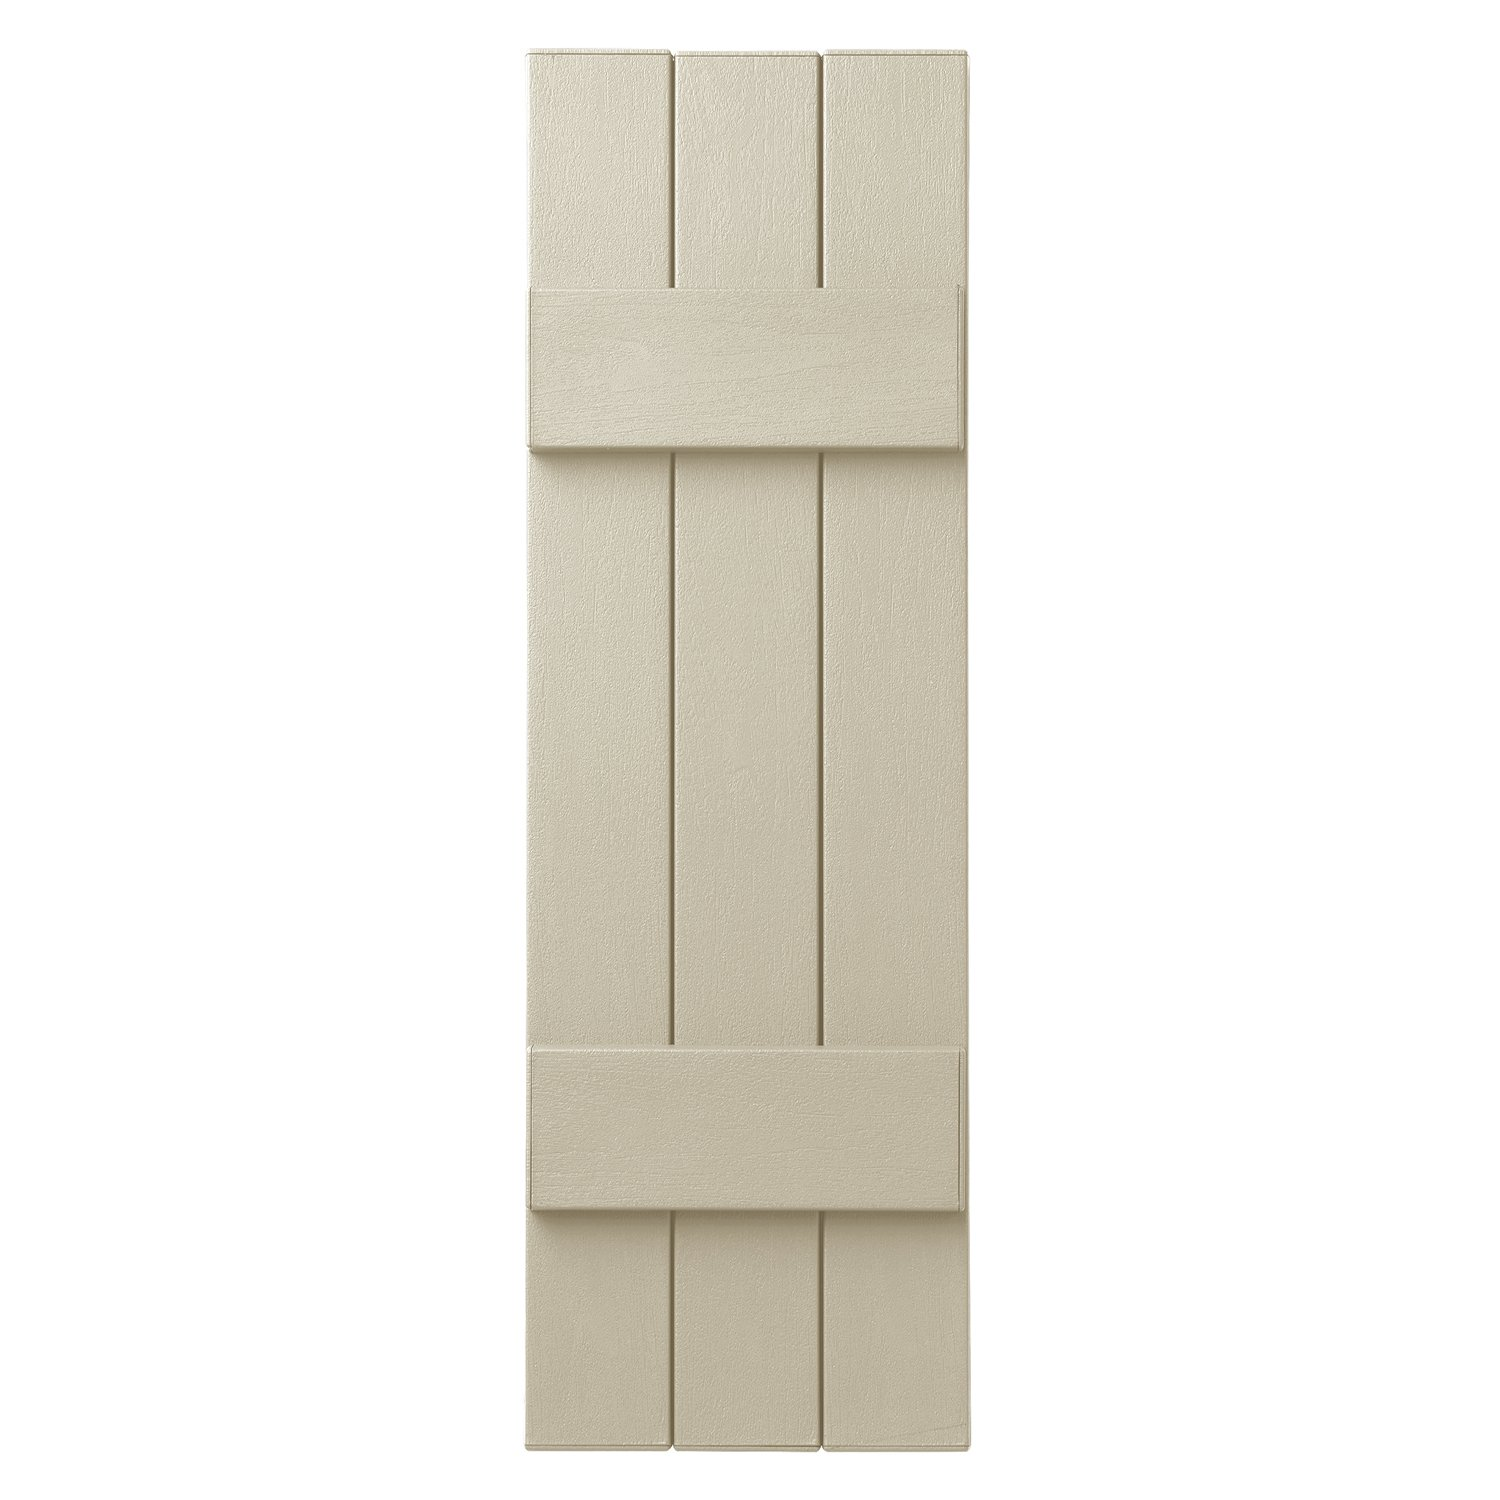 Ply Gem Shutters and Accents VIN3C1139 CRM 3 Closed Board and Batten, Sand Dollar